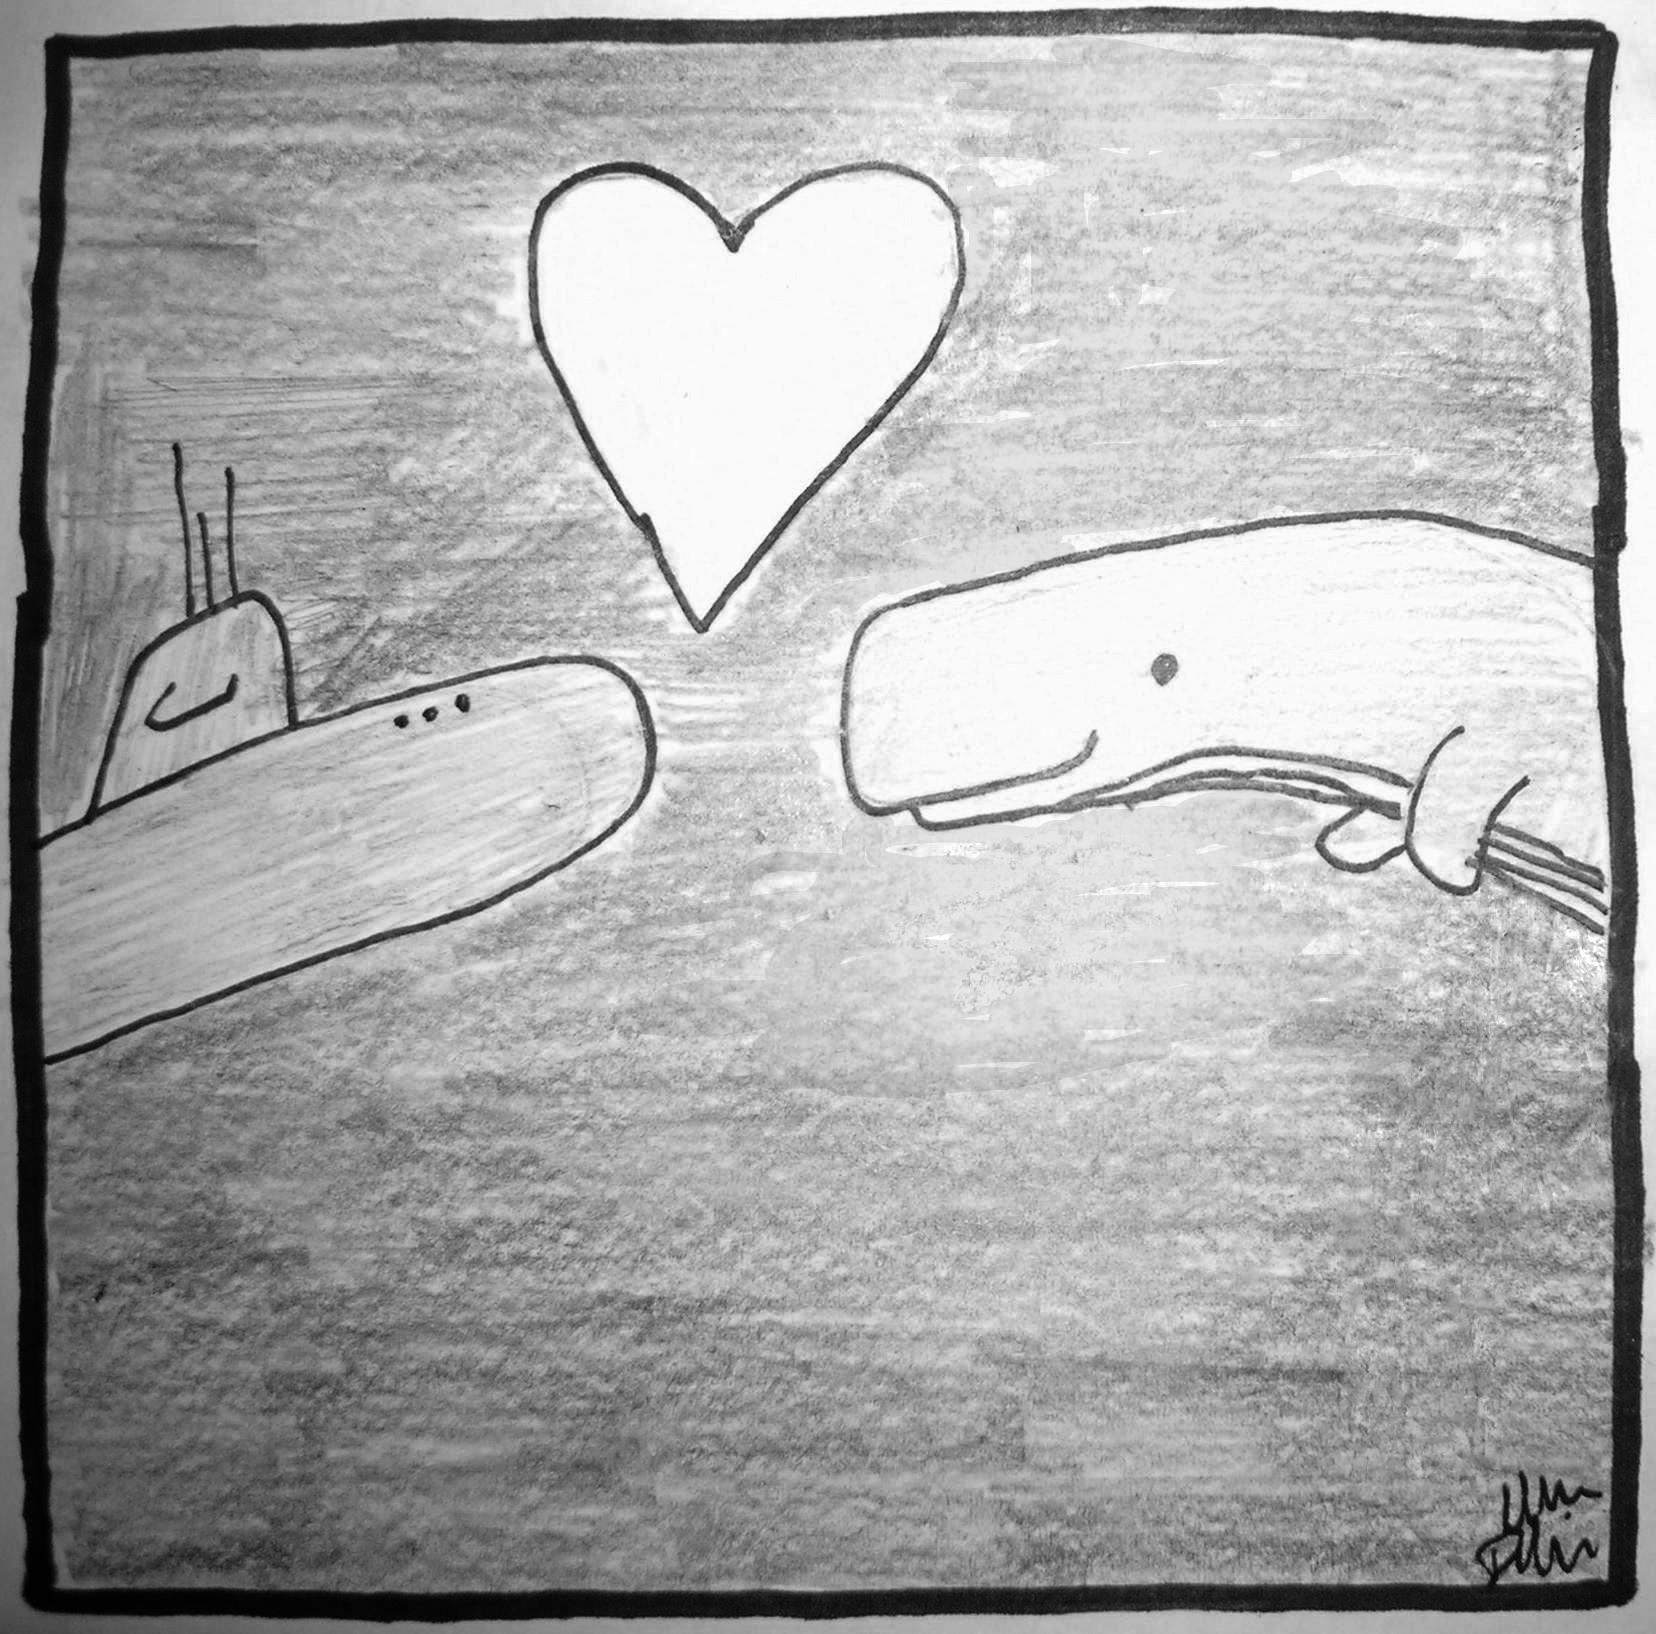 A sperm whale and a submarine in love